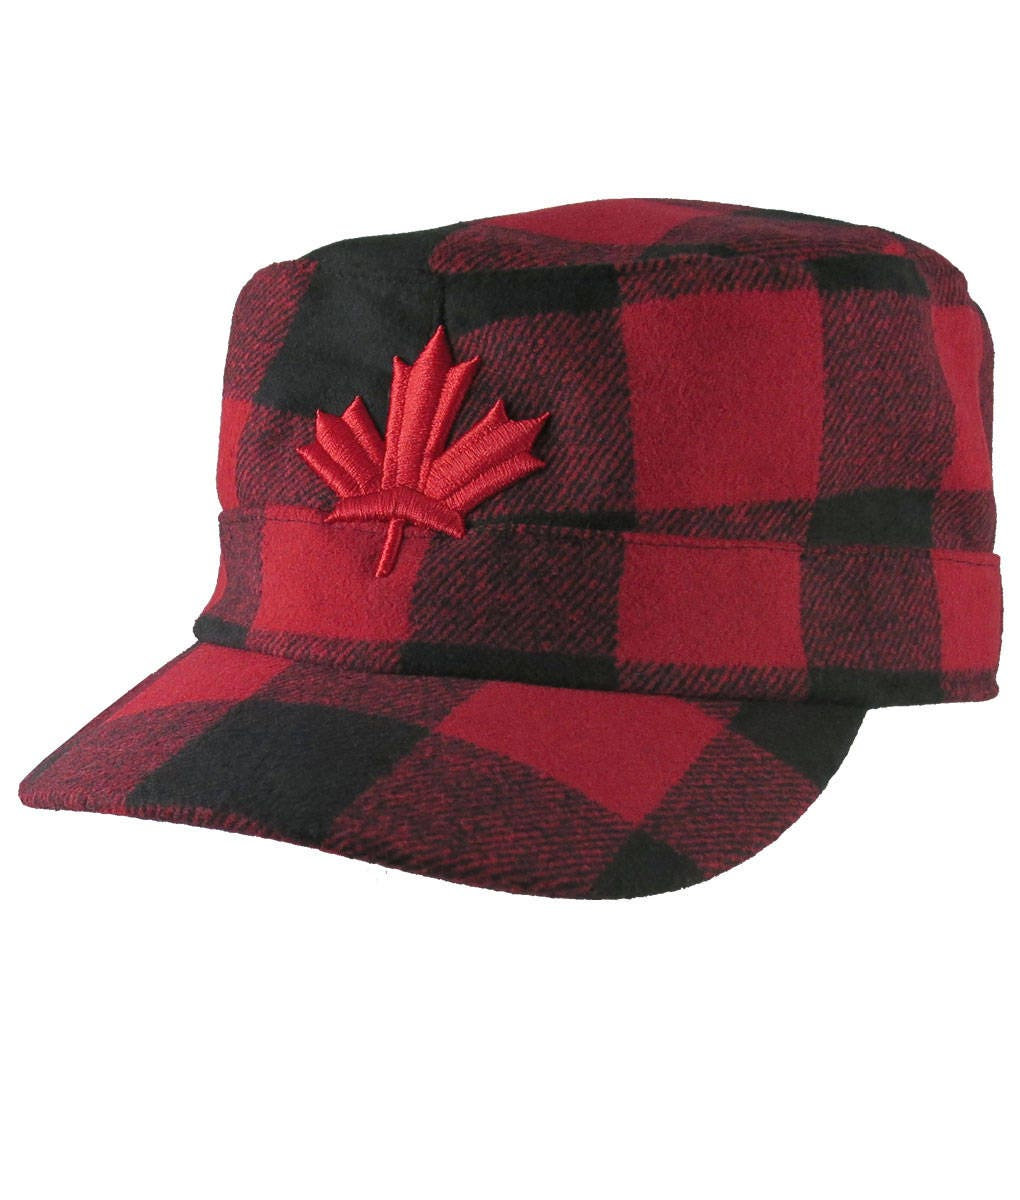 95120a399ec Red Maple Leaf 3D Puff Embroidery Red + Black Buffalo Check Plaid Lumberjack  Military Flat Cap Style Full Fit Winter Adjustable Woolen Hat